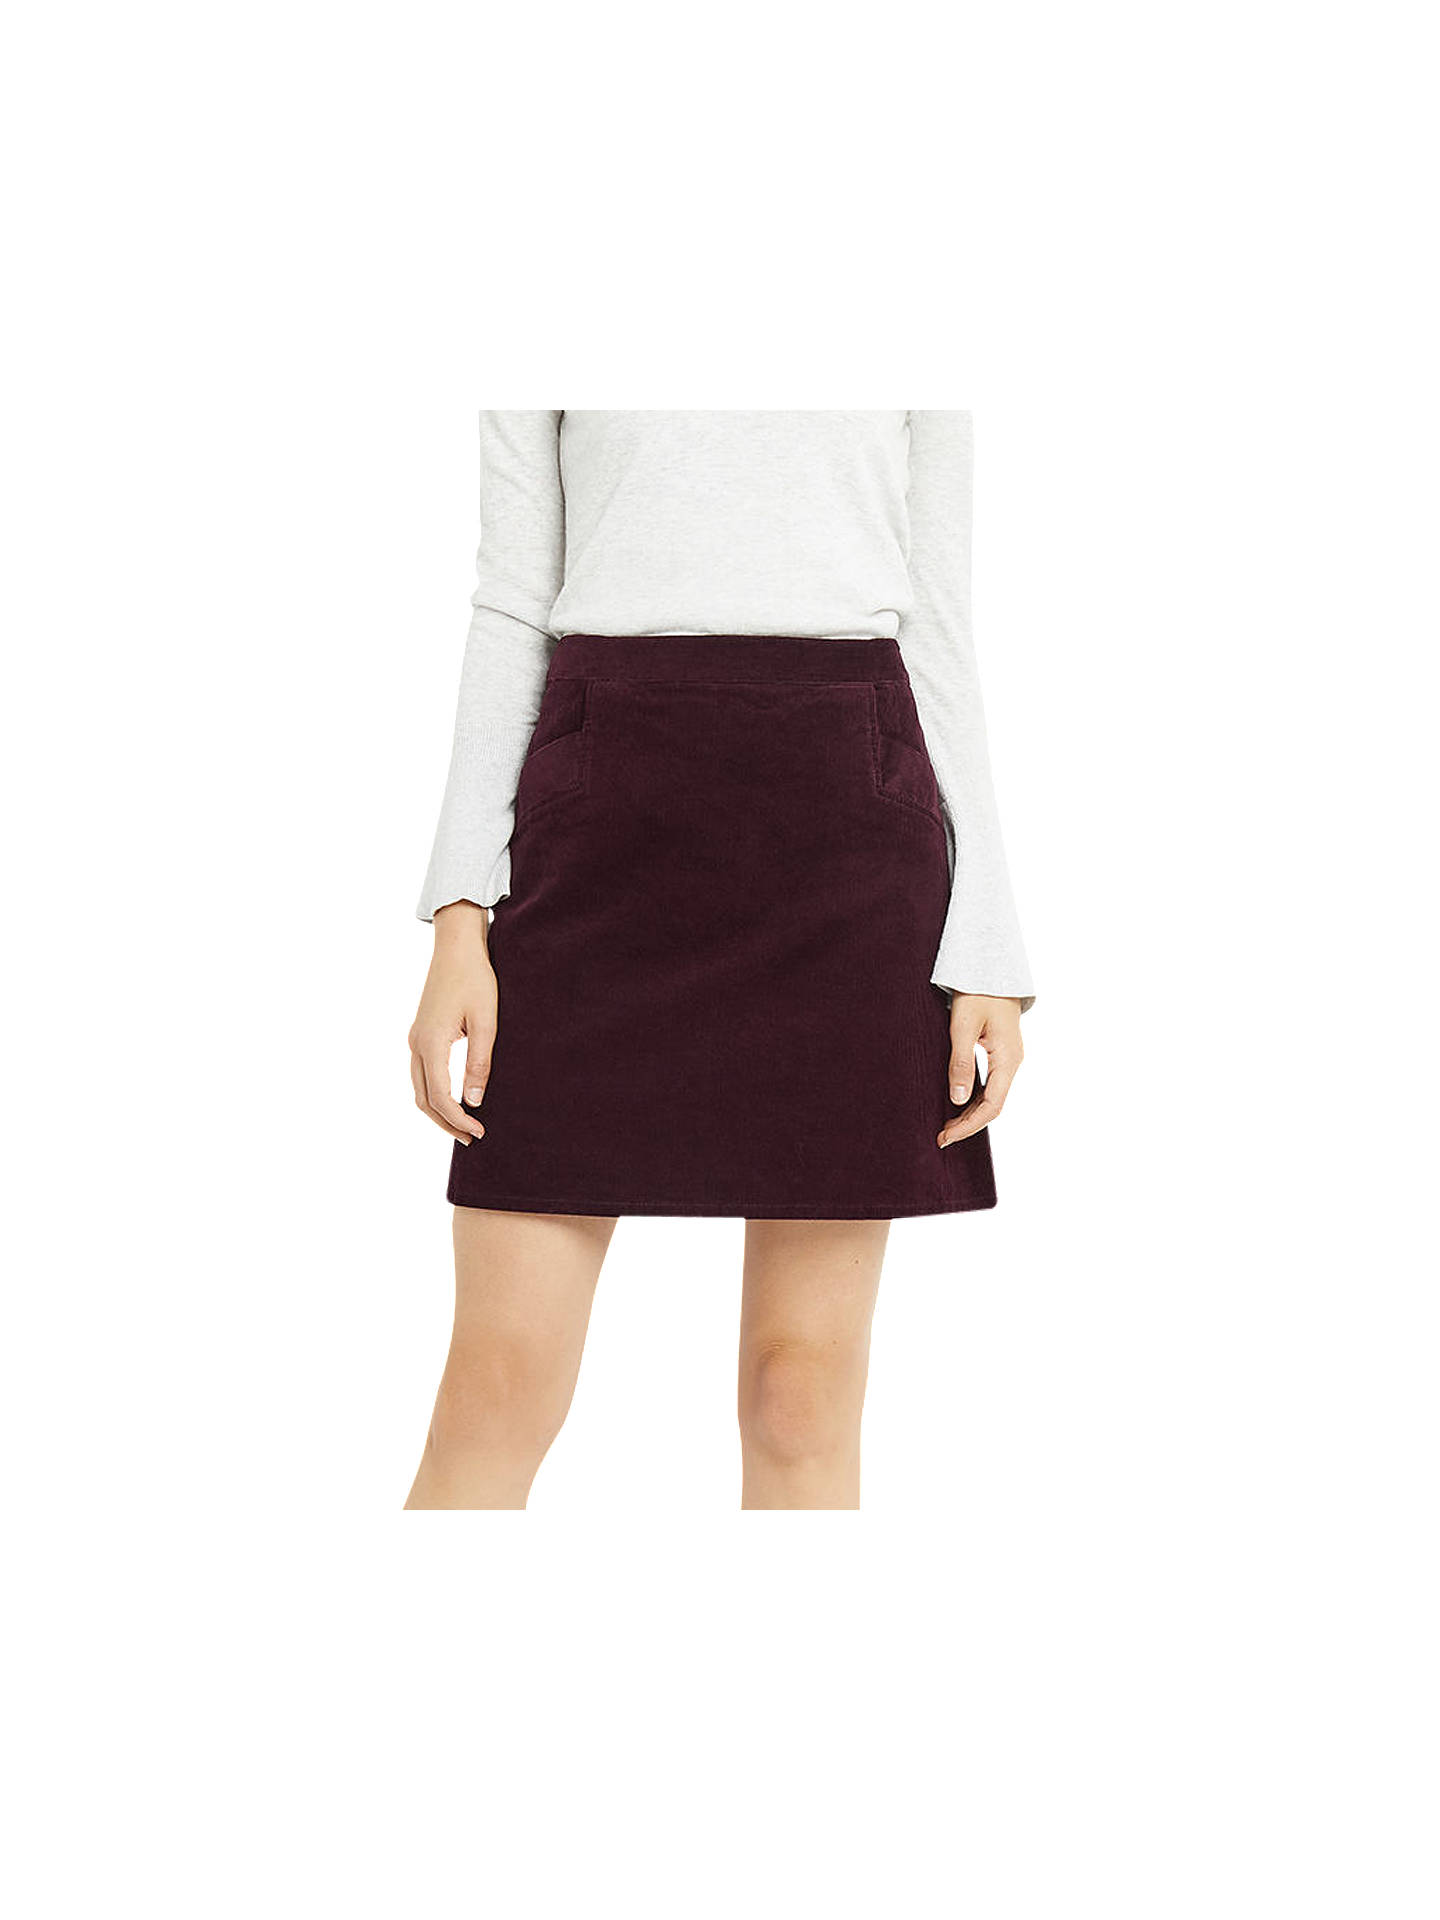 52fd21d11310 Buy Oasis Cut About Cord Skirt, Burgundy, 6 Online at johnlewis.com ...